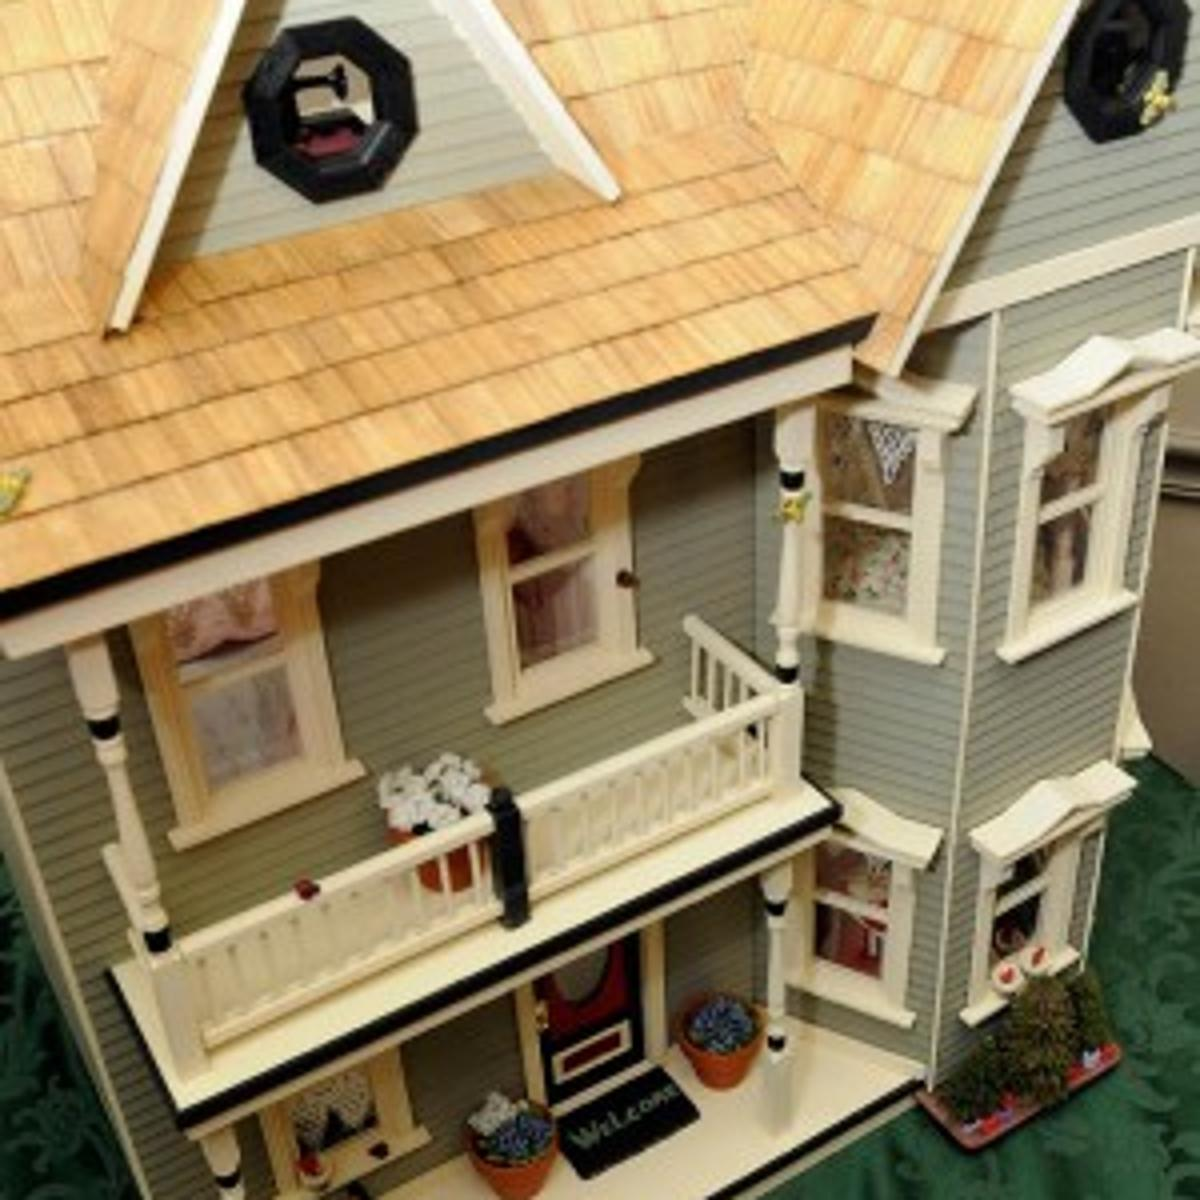 A passion for dollhouses | Arts and entertainment | hjnews com